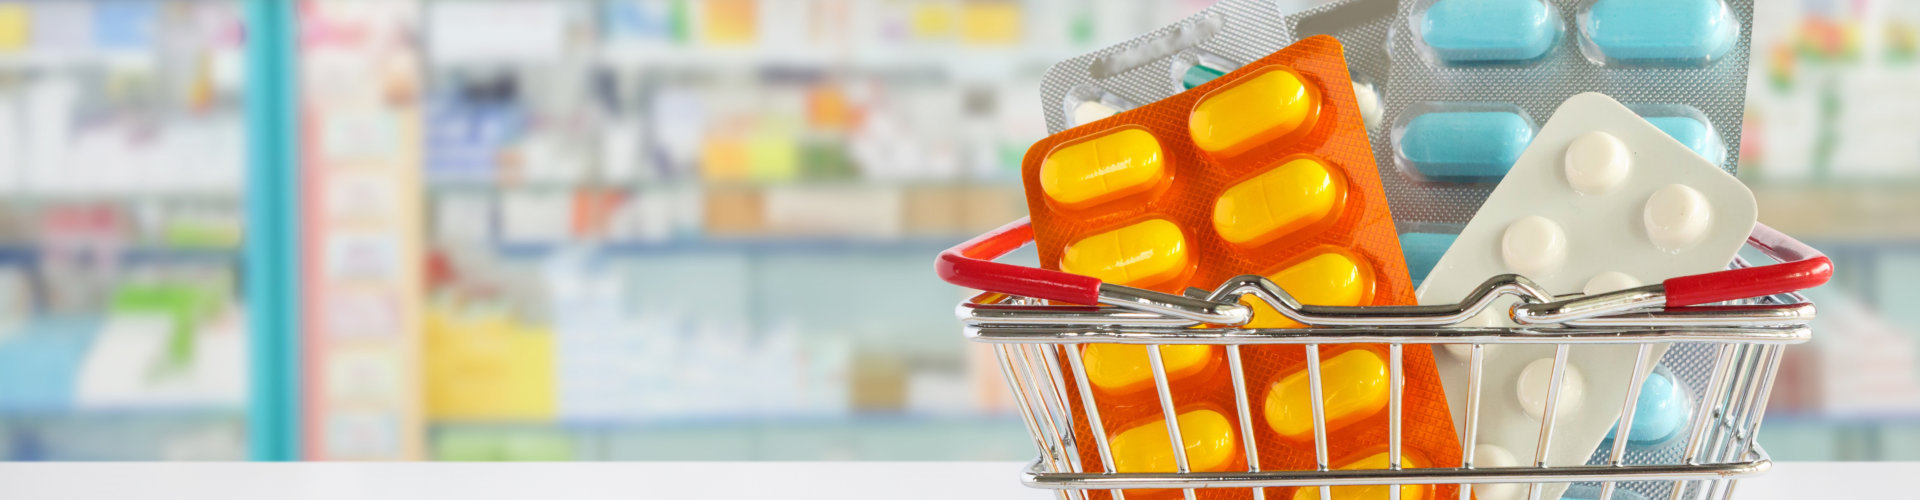 medicine pills package in shopping basket